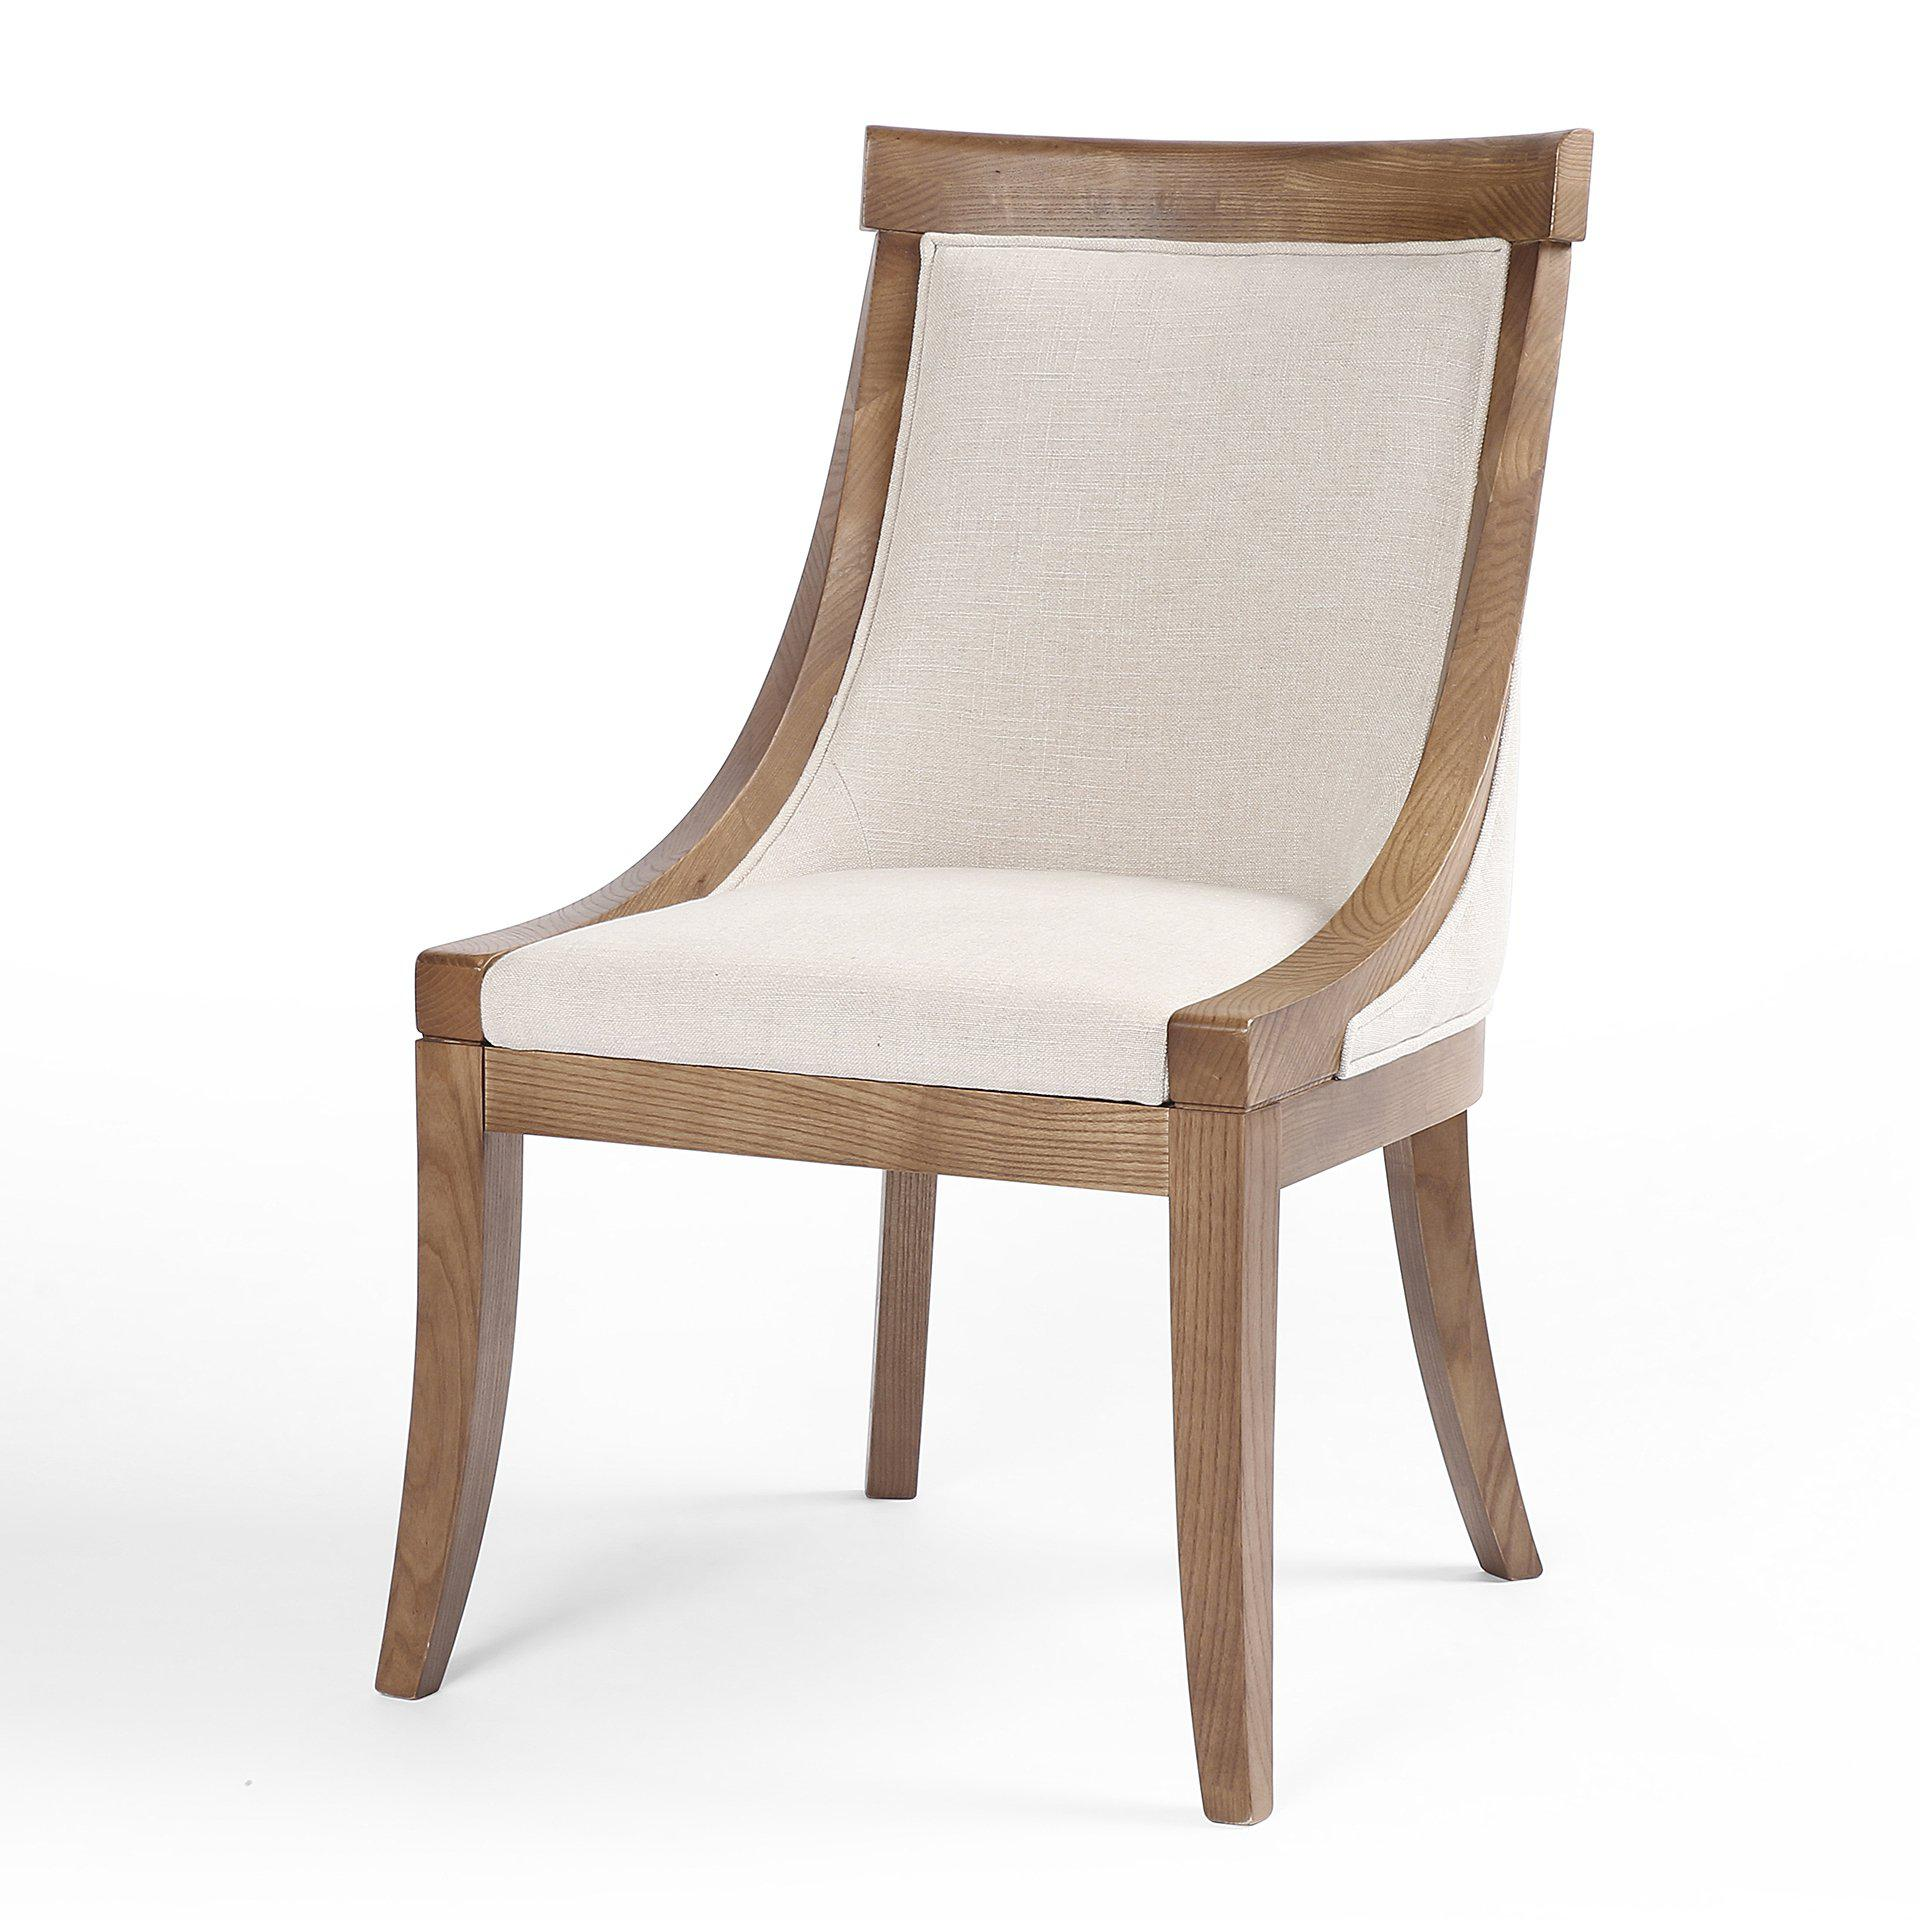 Florington dining chair